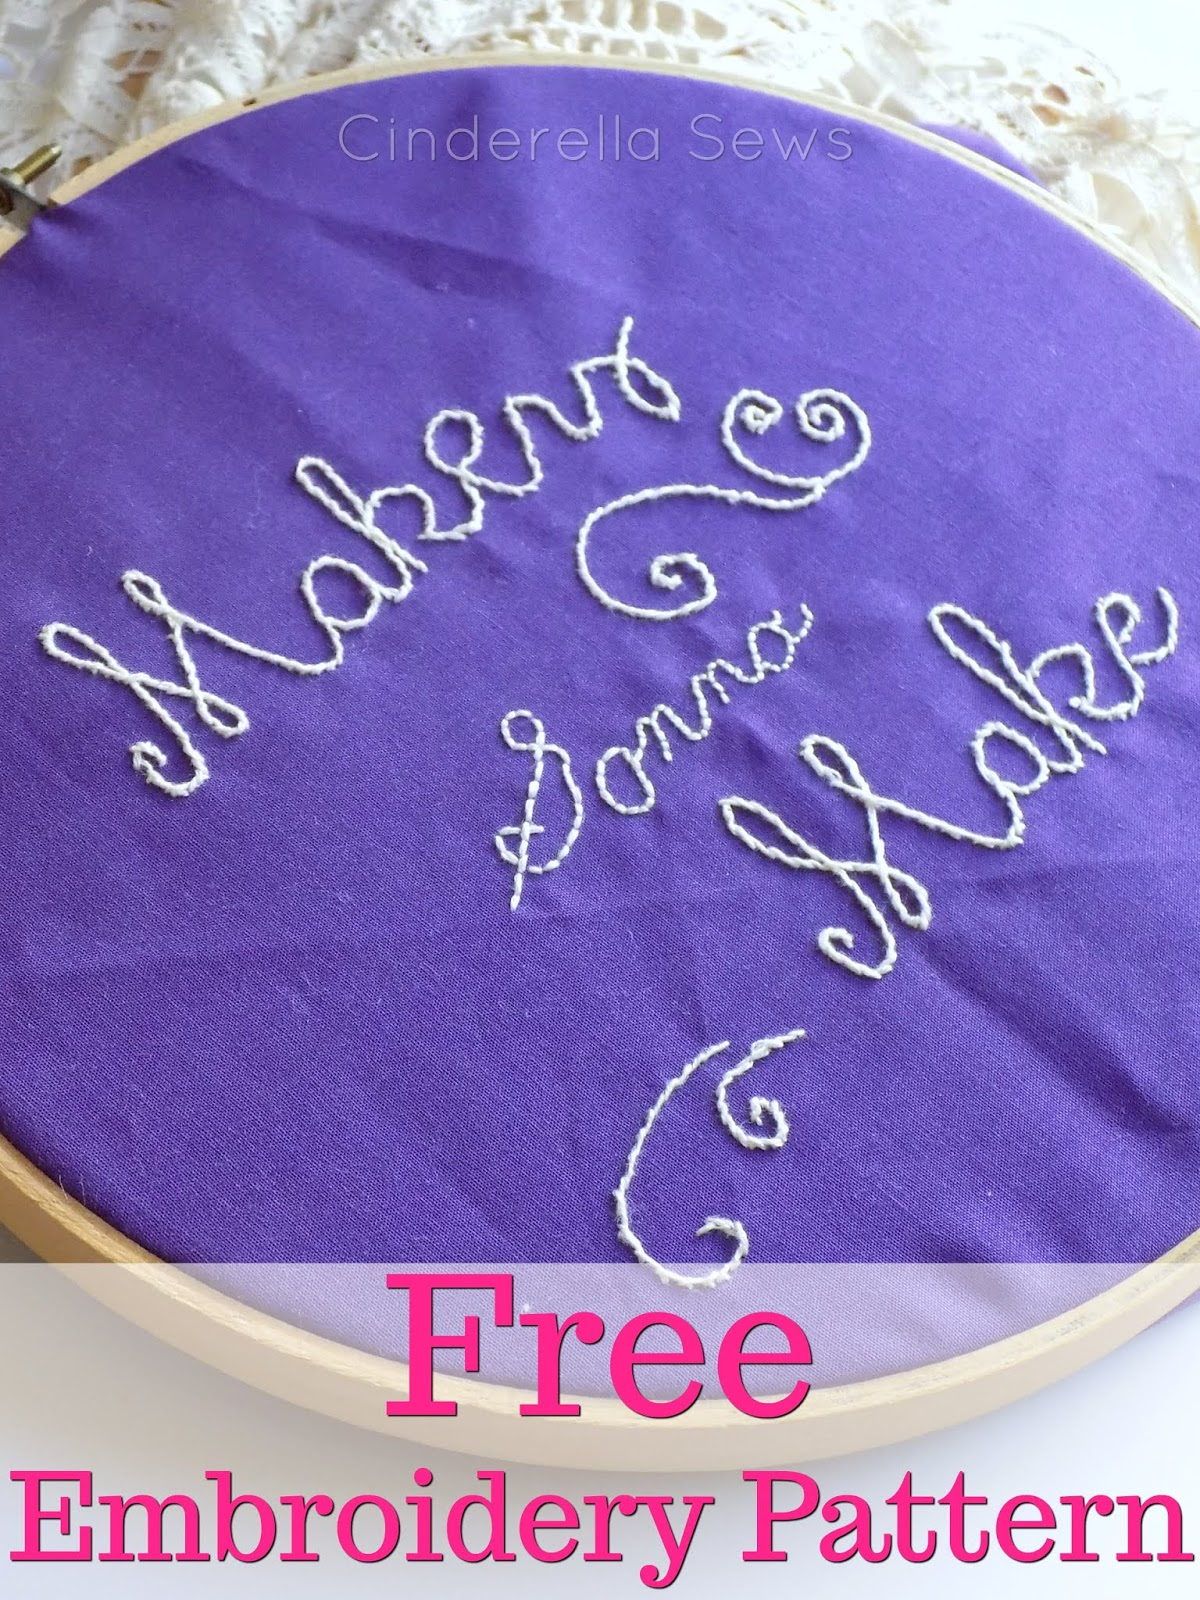 Make Embroidery Pattern Makers Gonna Make Embroidery Pattern